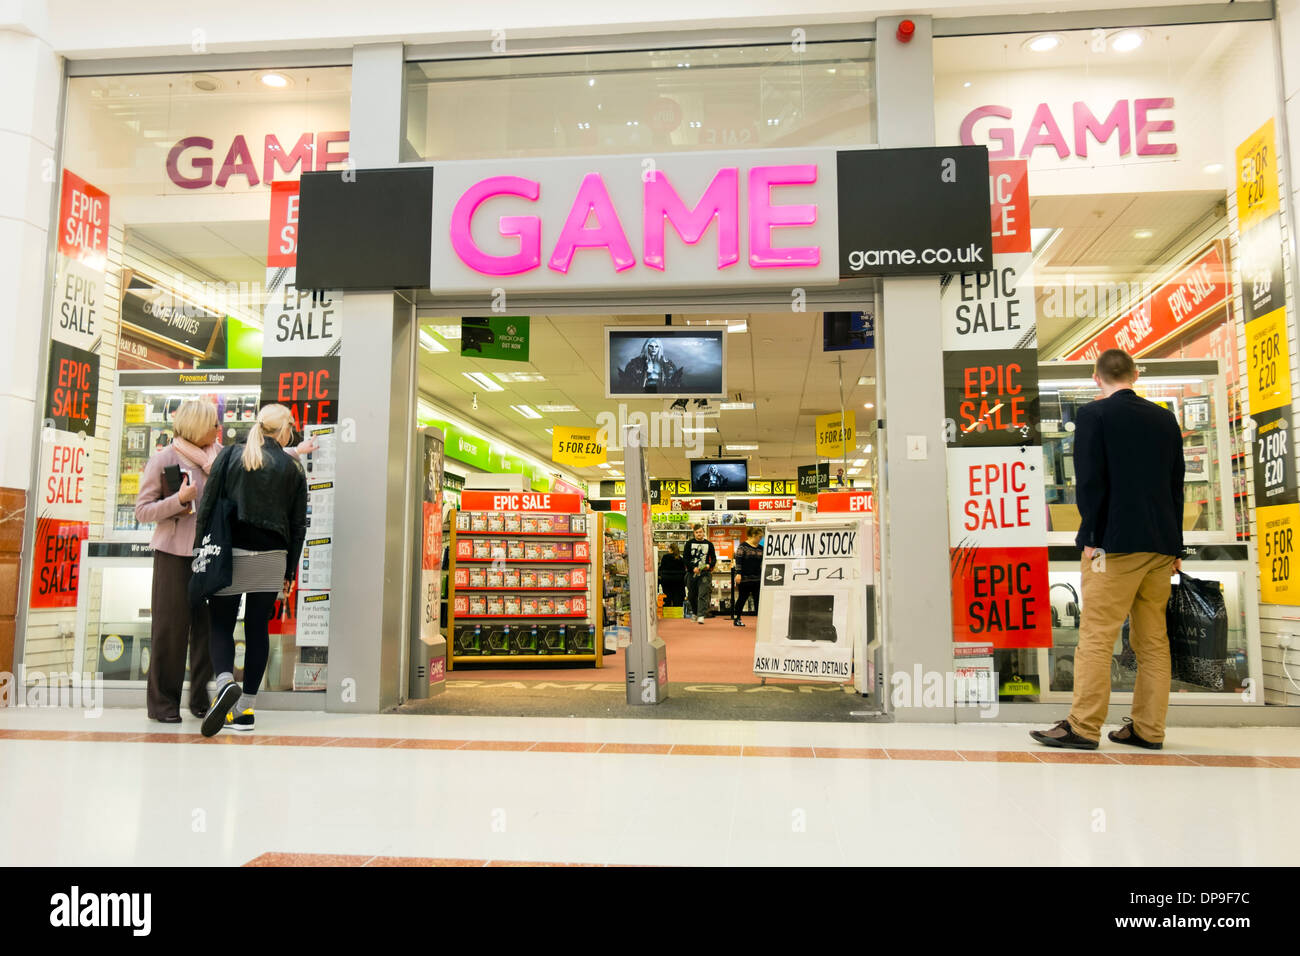 d05044c2c4 Game store at Merry Hill